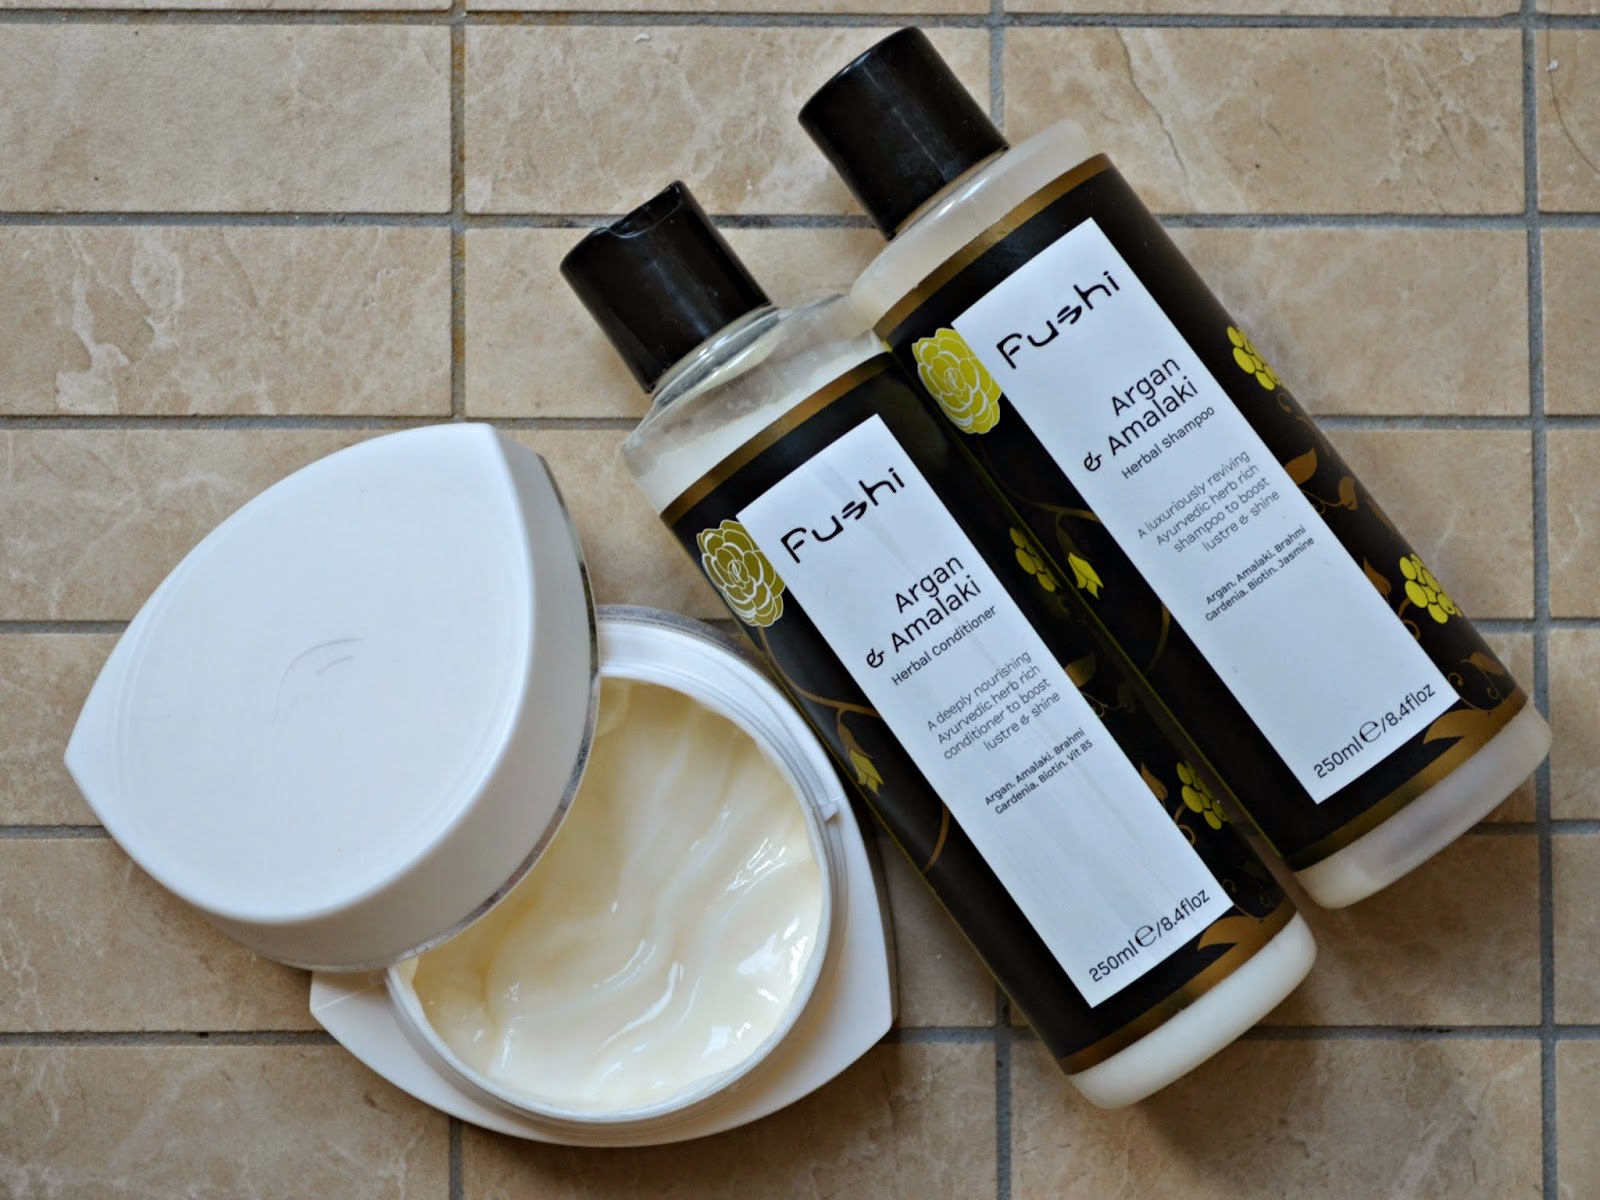 Fushi Argan and amalaki shampoo and conditioner Dove intensive repair mask